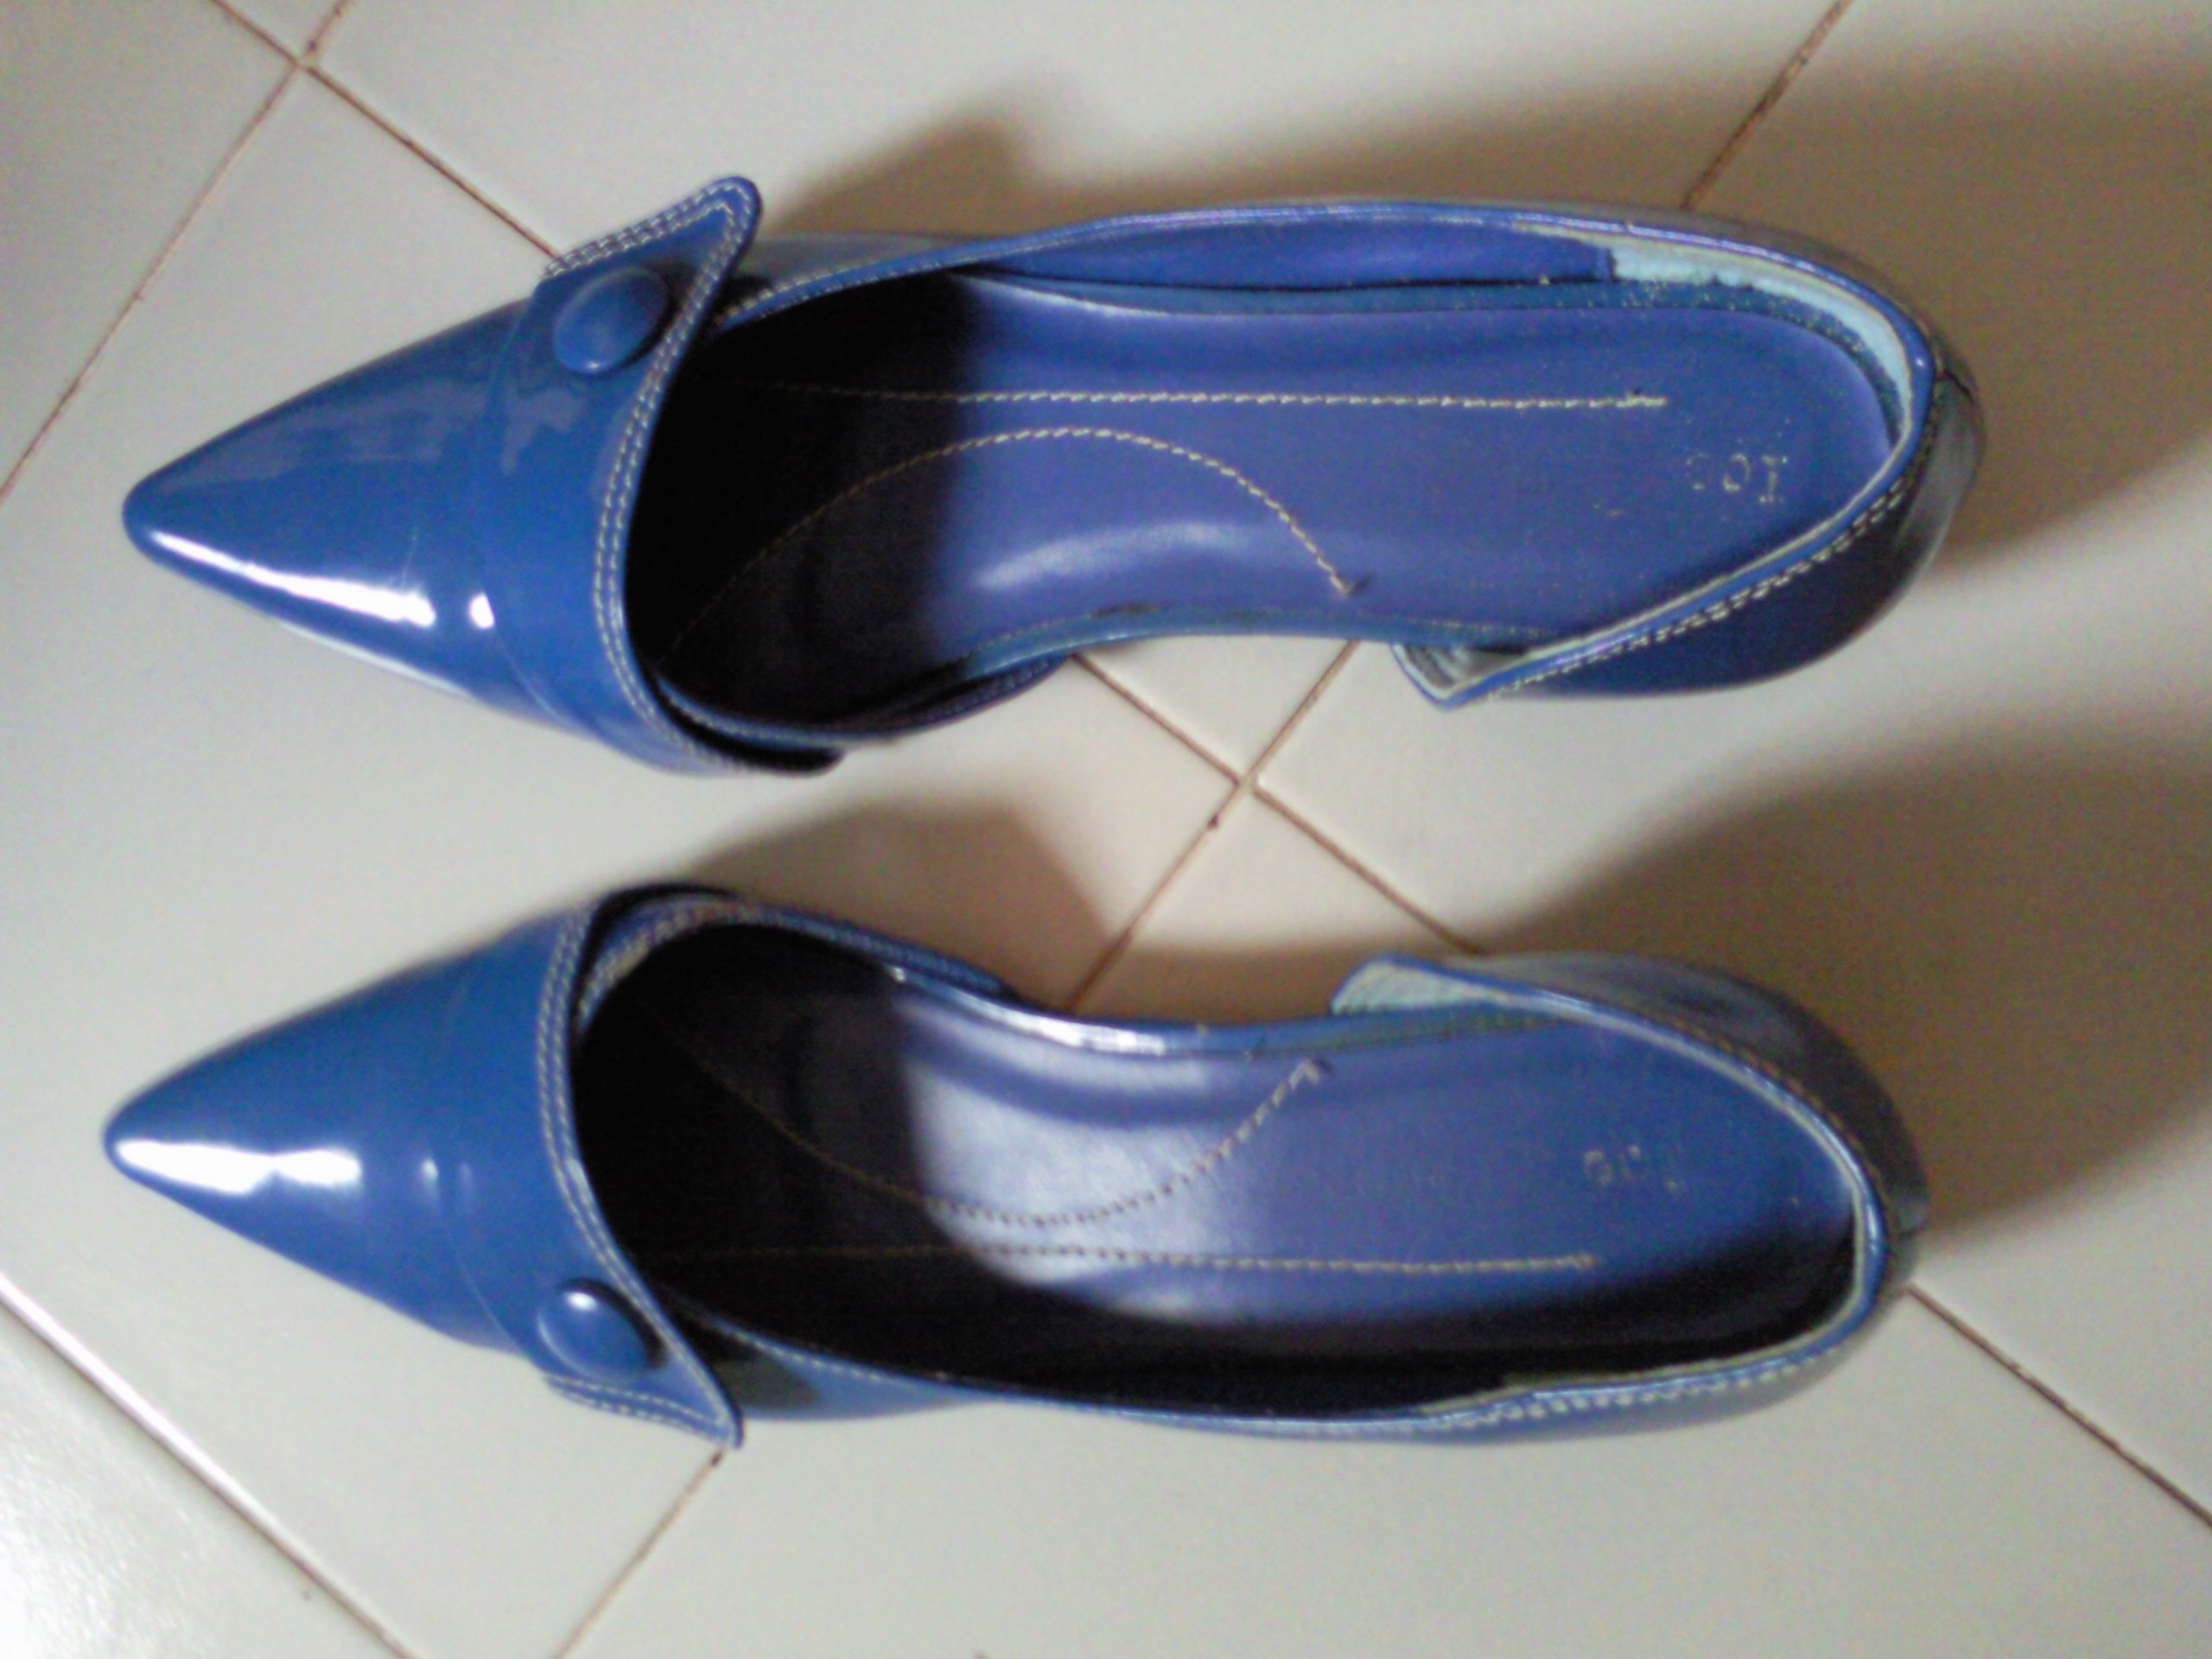 FOR SALE: Ladies Shoes Size: 38